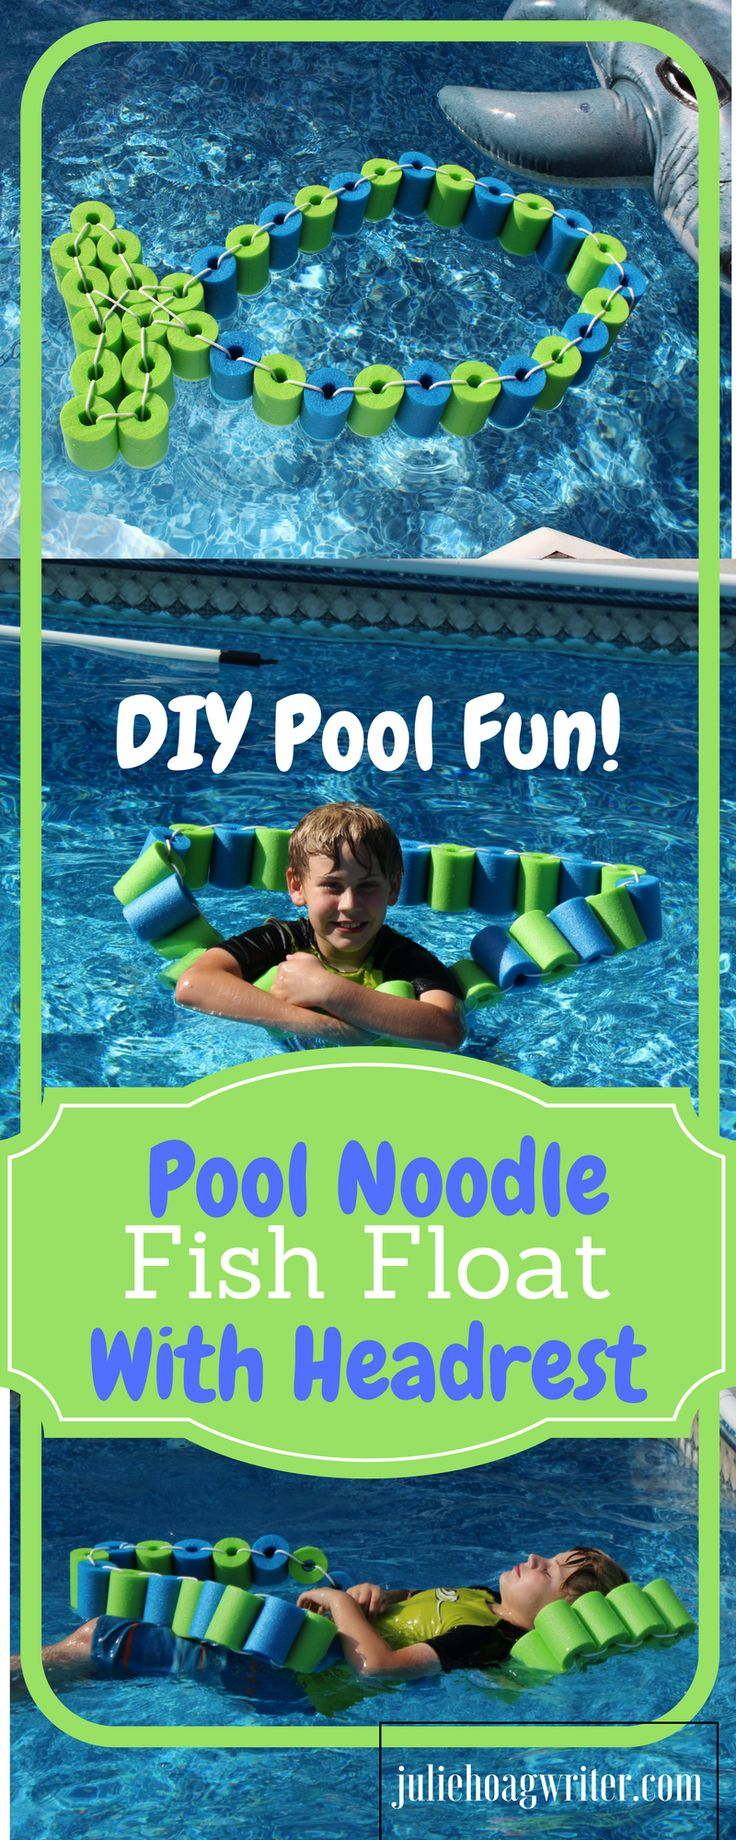 DIY Pool Noodle Fish Float With Headrest-pool noodle ideas-swimming pools-inground pool-noodle crafts-pool noodles-pool ideas-pool toys-pool toys for kids-pool floats-pool floats for adults-swimming pools-swimming pool ideas-swimming pool backyard-pool play-pool fun for kids-pool fun ideas-swim floats kids-swim floats summer-kids-familly-DIY gifts @juliehoagwriter.com